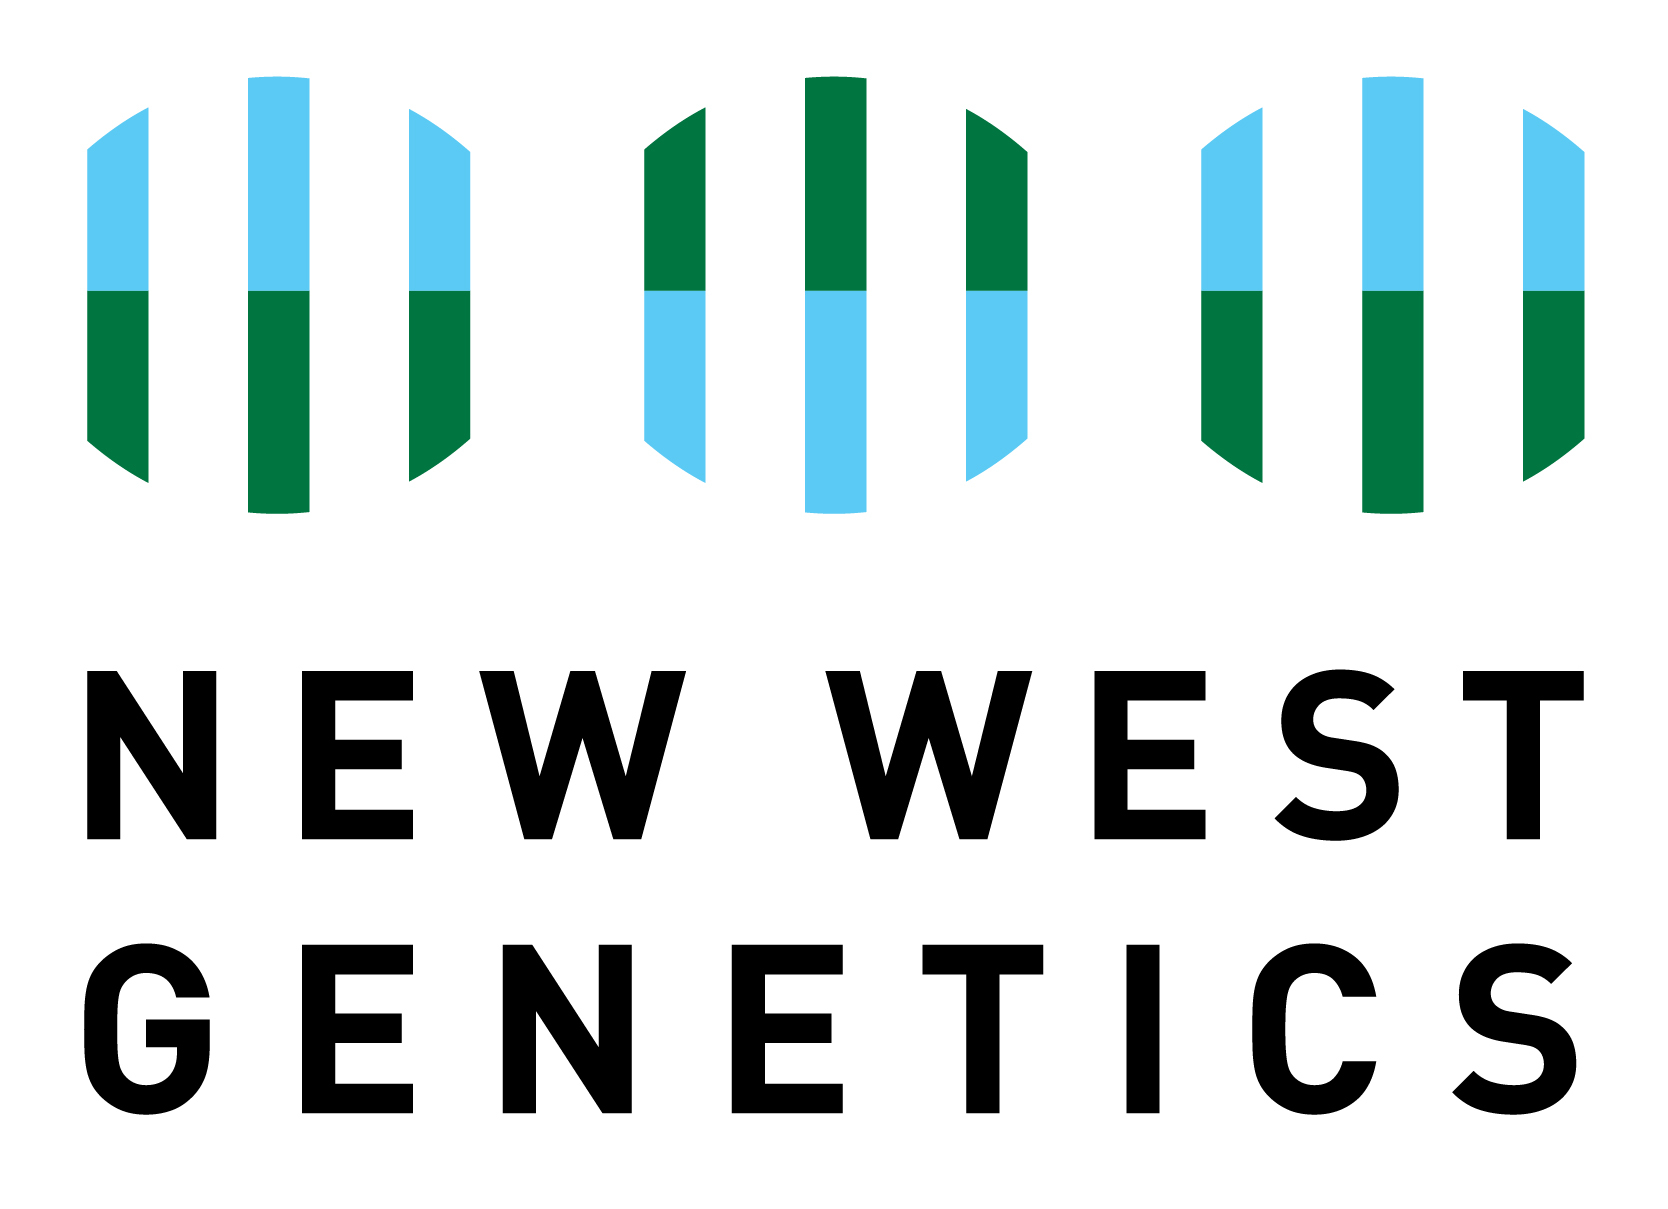 New West Genetics Files for First PVP Certificate for AOSCA